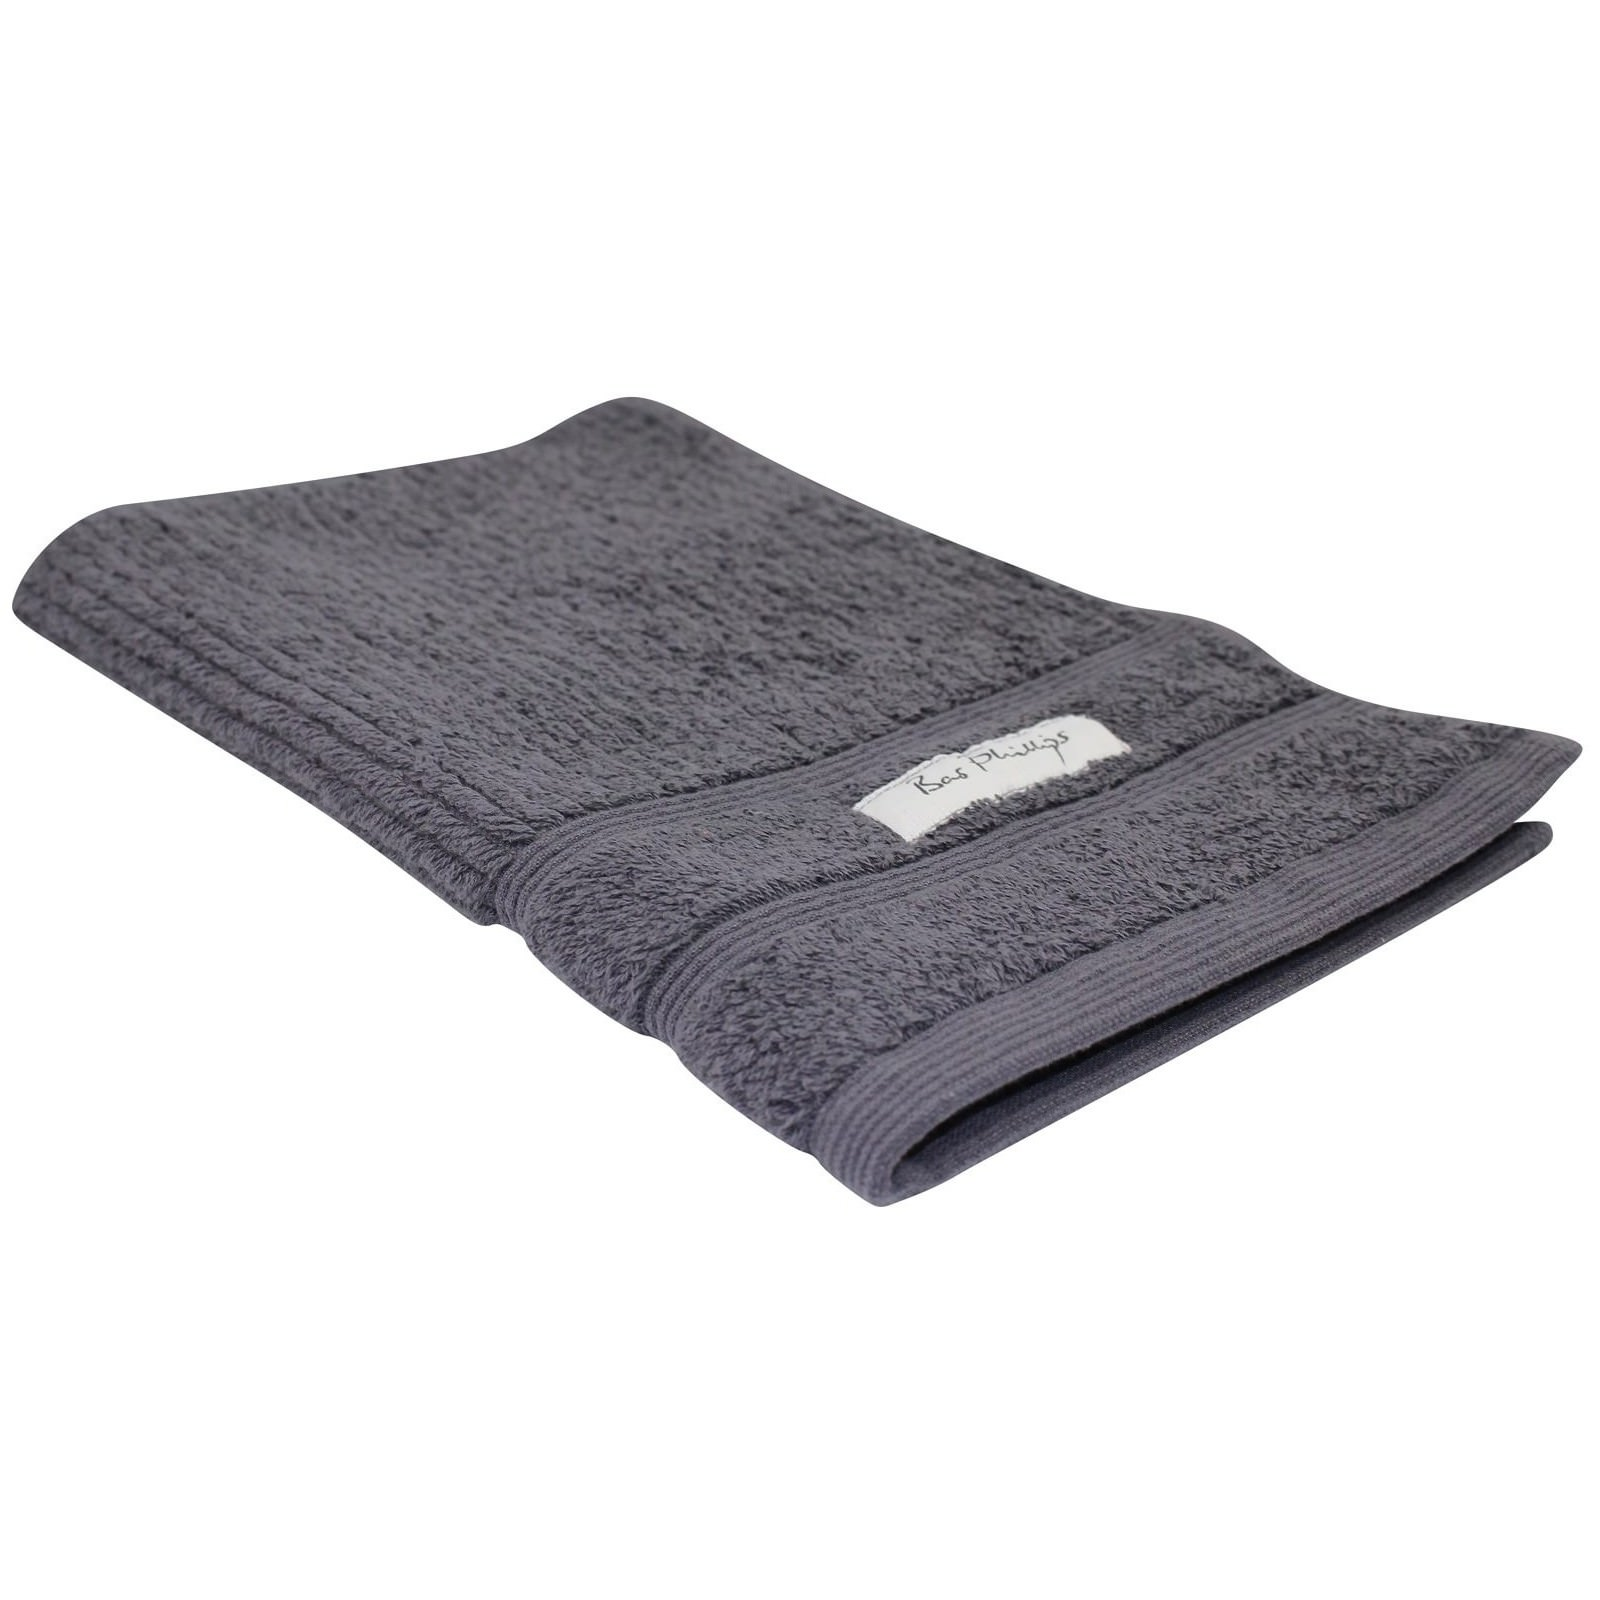 Bas Phillips Cairo Egyptian Cotton Hand Towel, Graphite